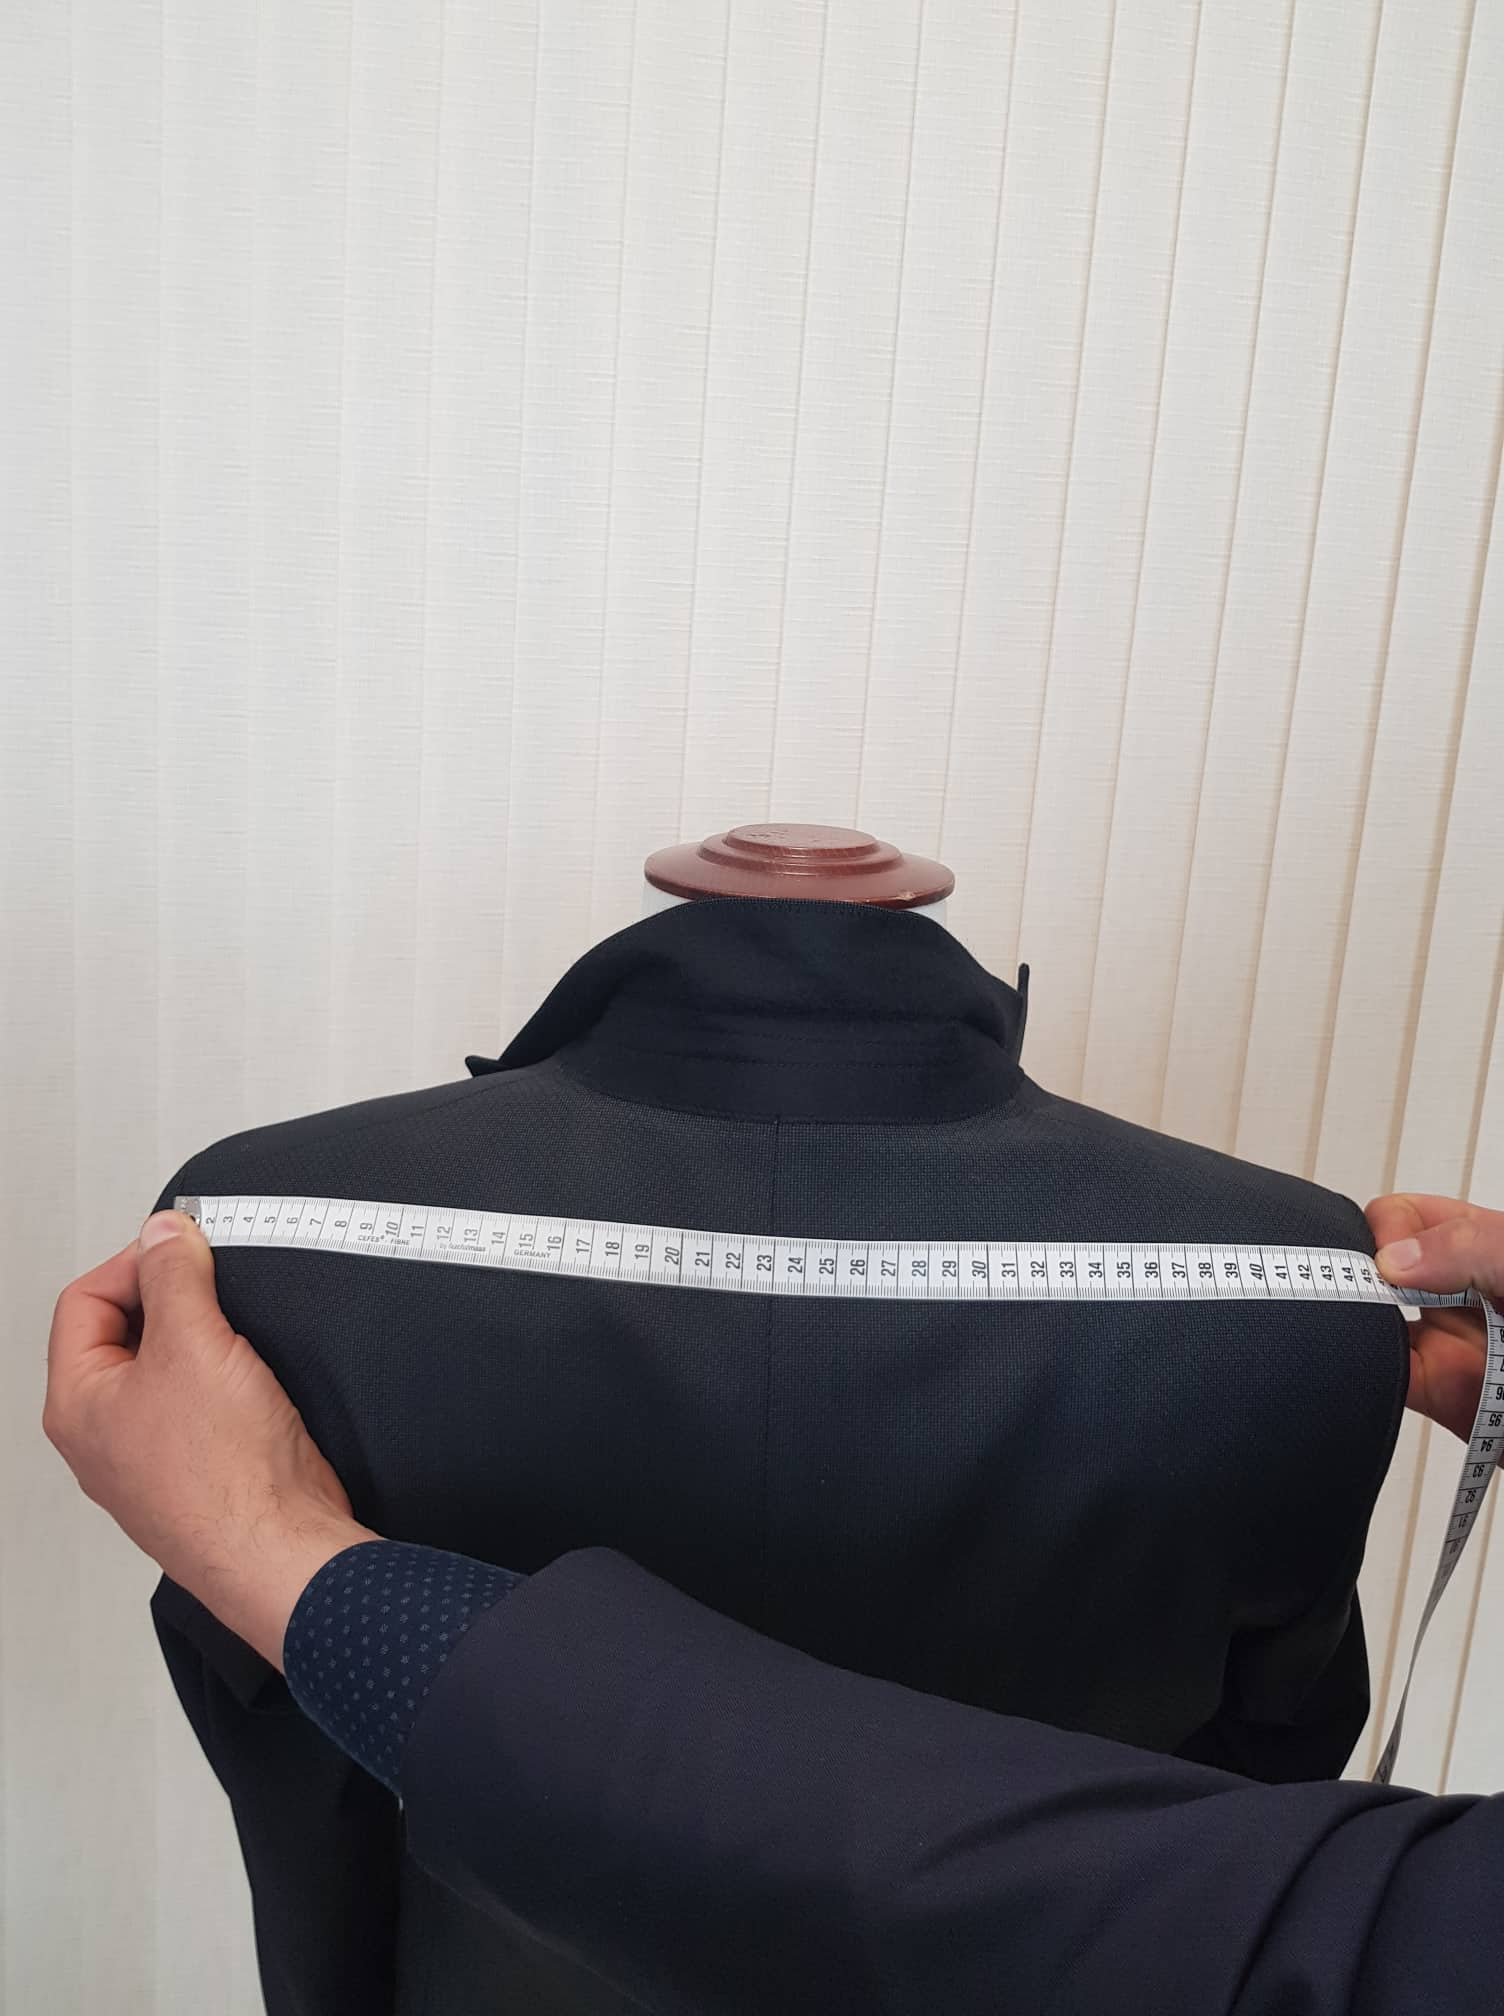 Taking Measurements for a Tailored Suit